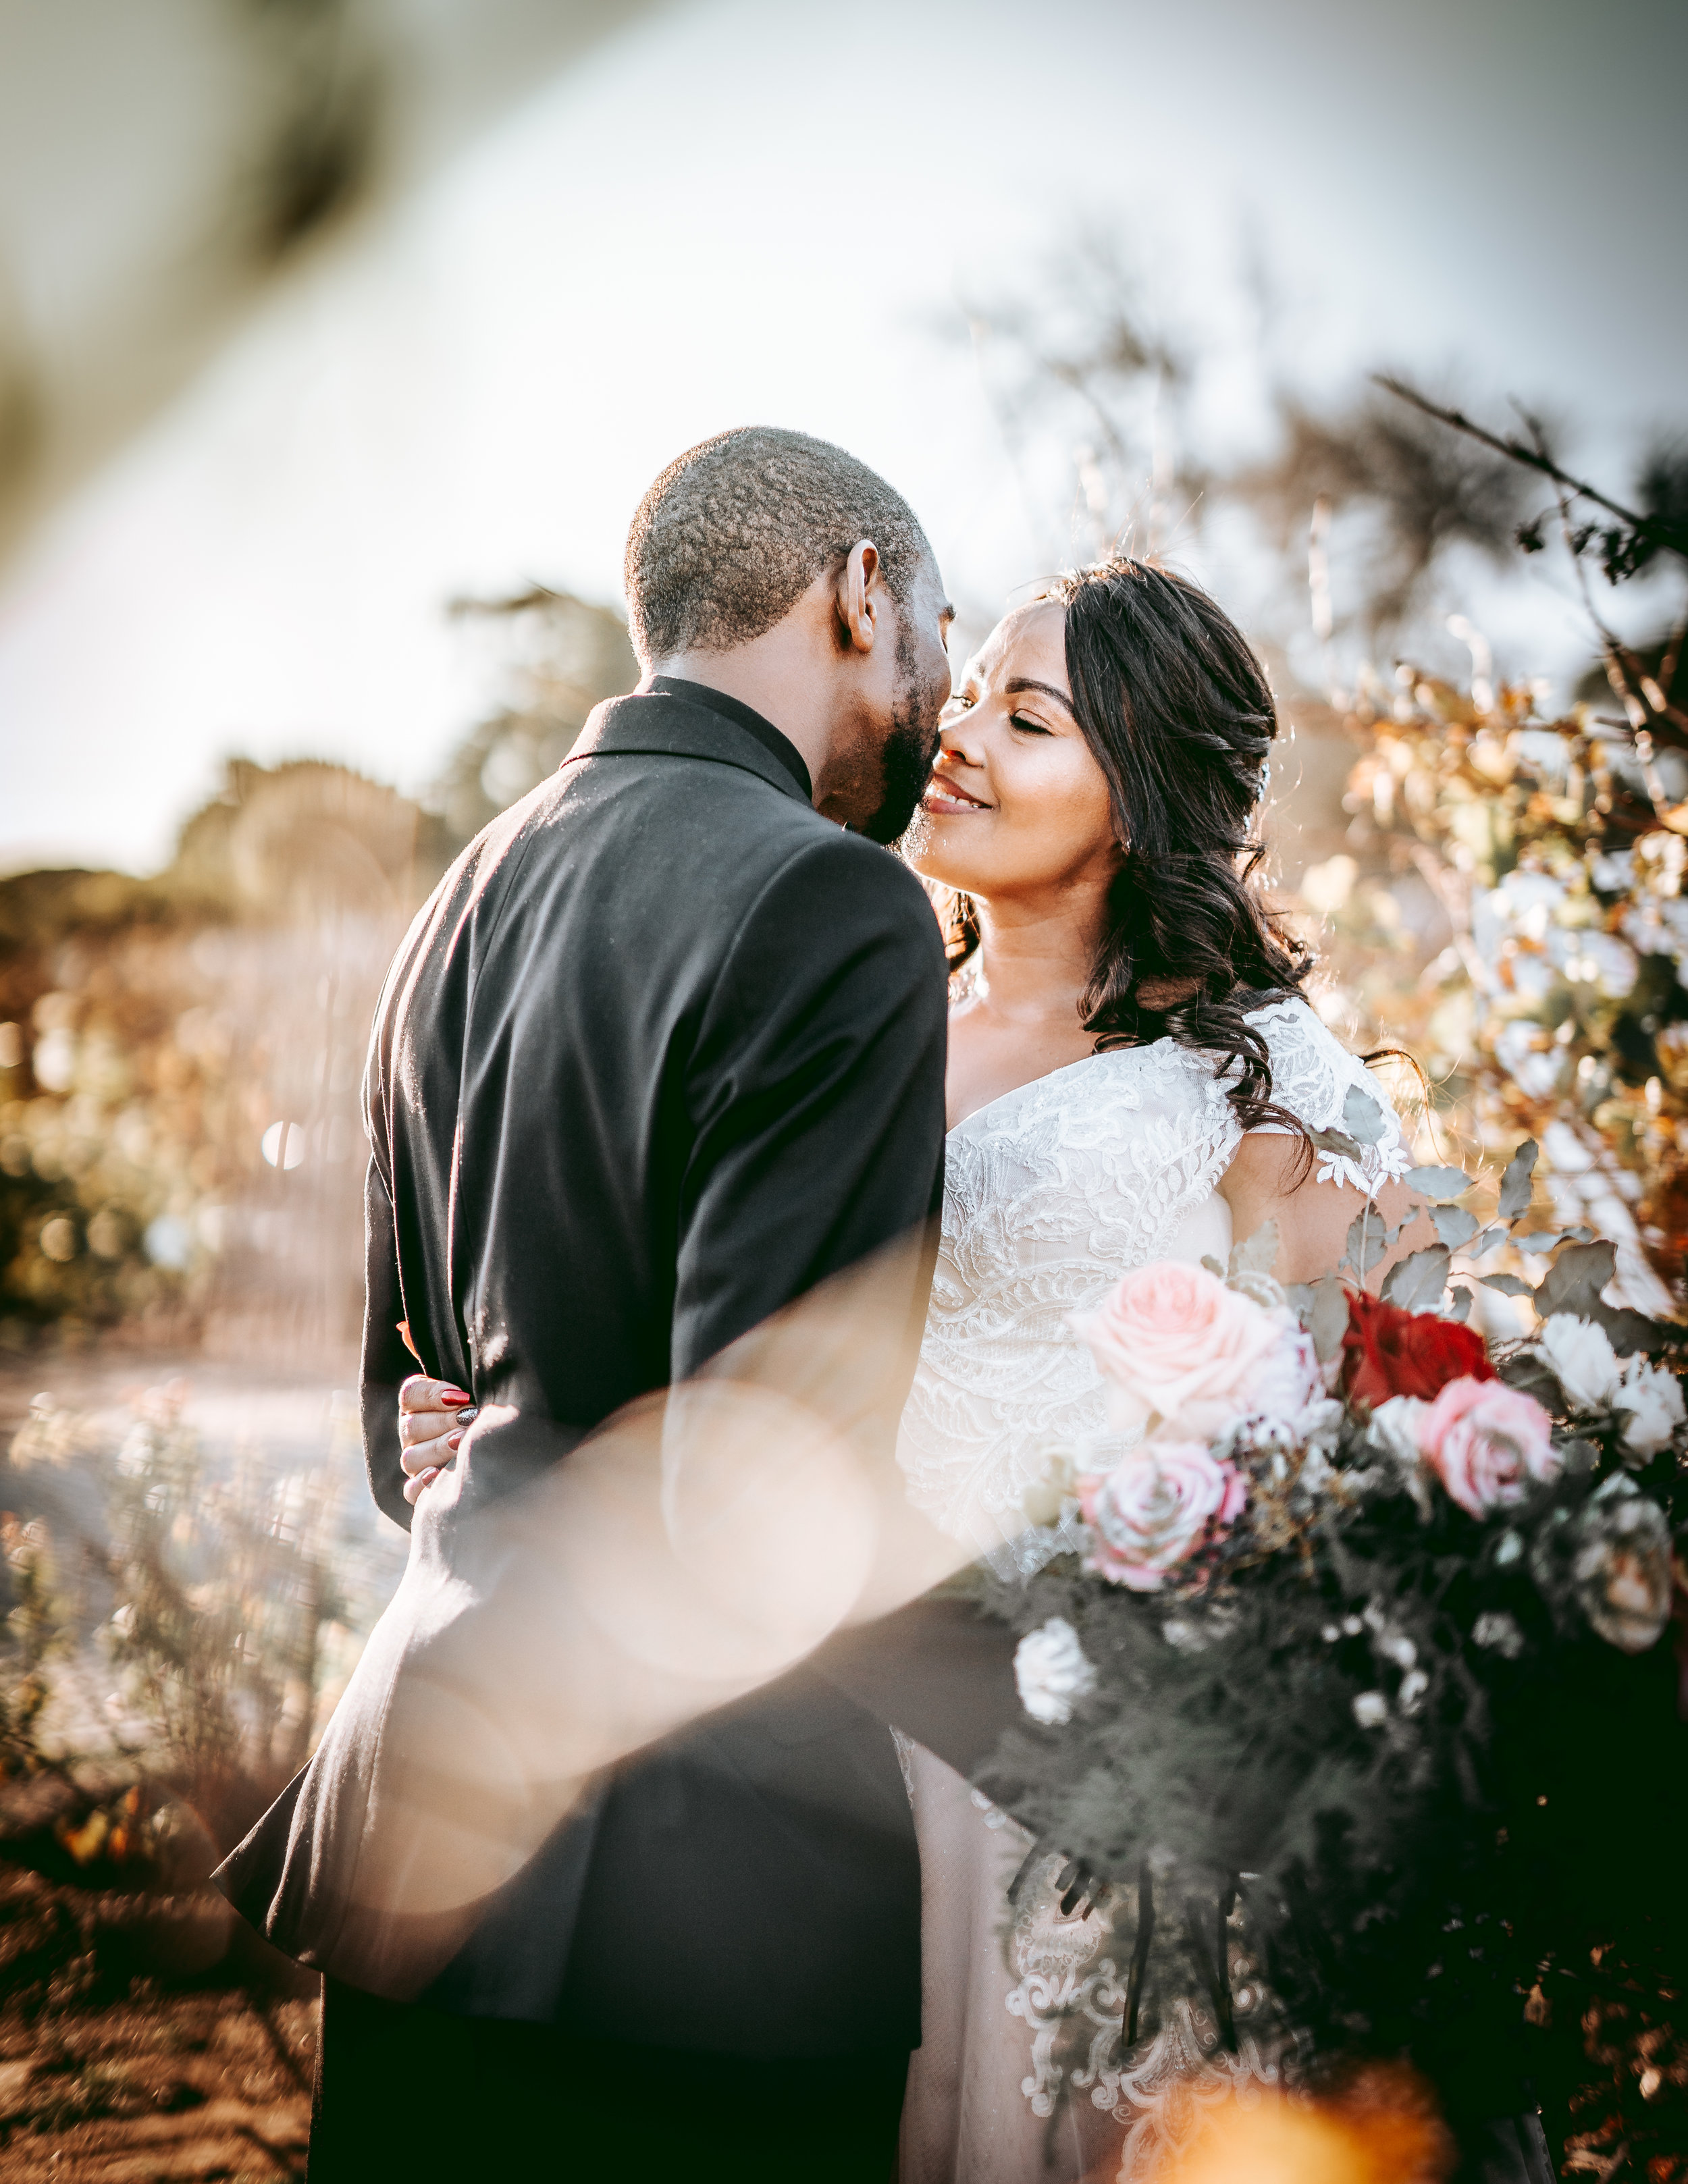 Wedding Photography Cape Town - Images by Cape Image Co-3.jpg